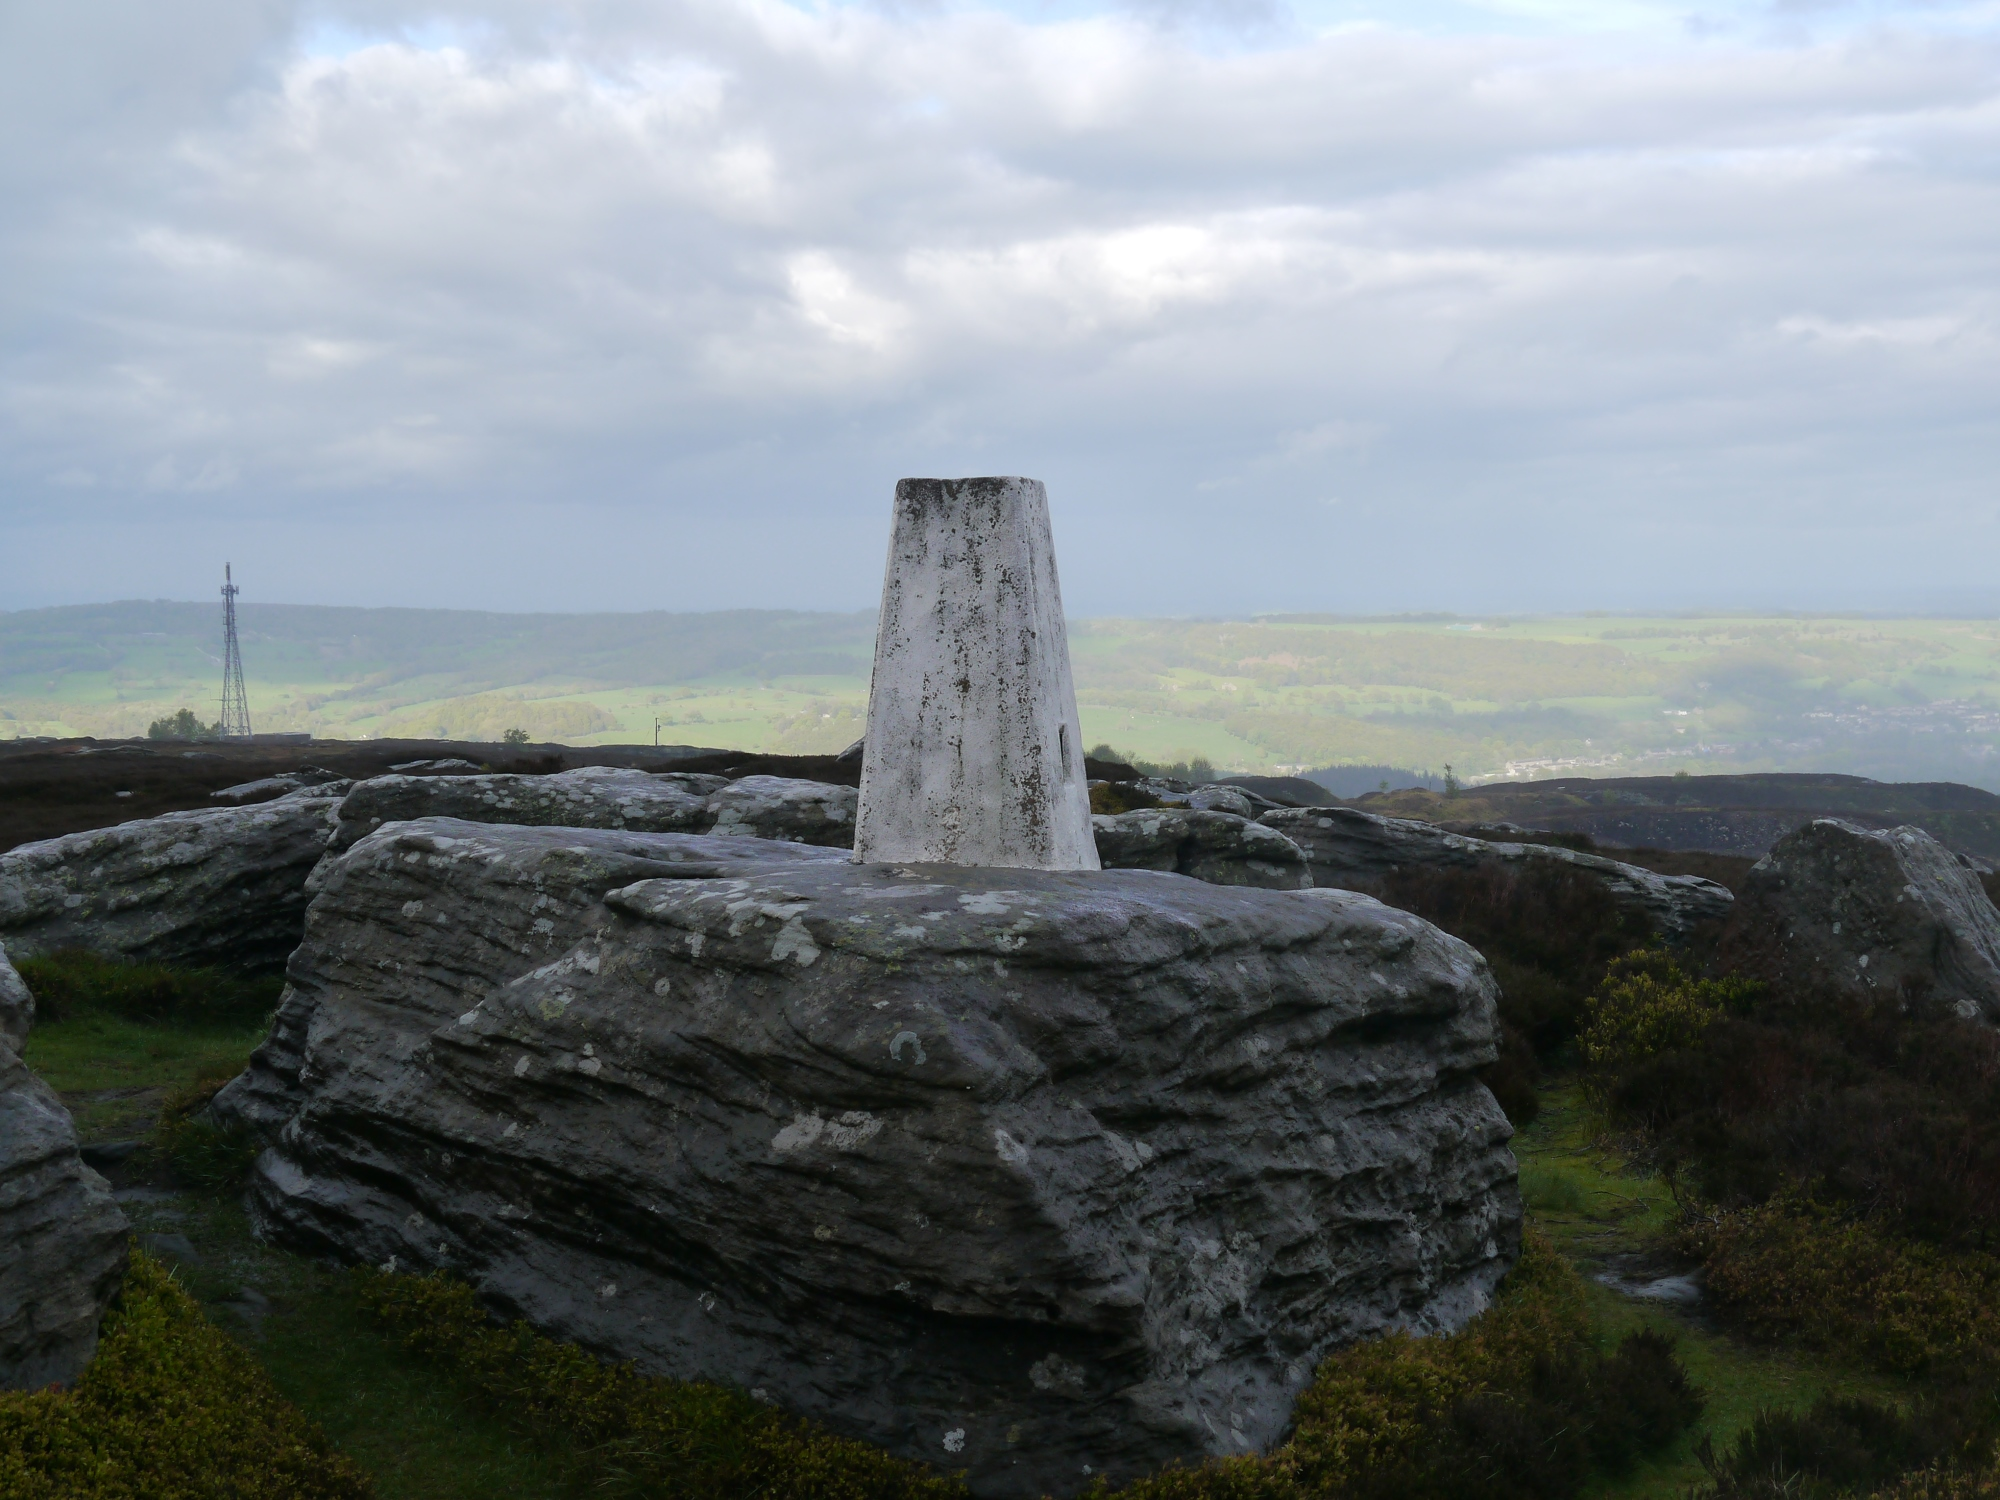 Heyshaw Moor Trig Point